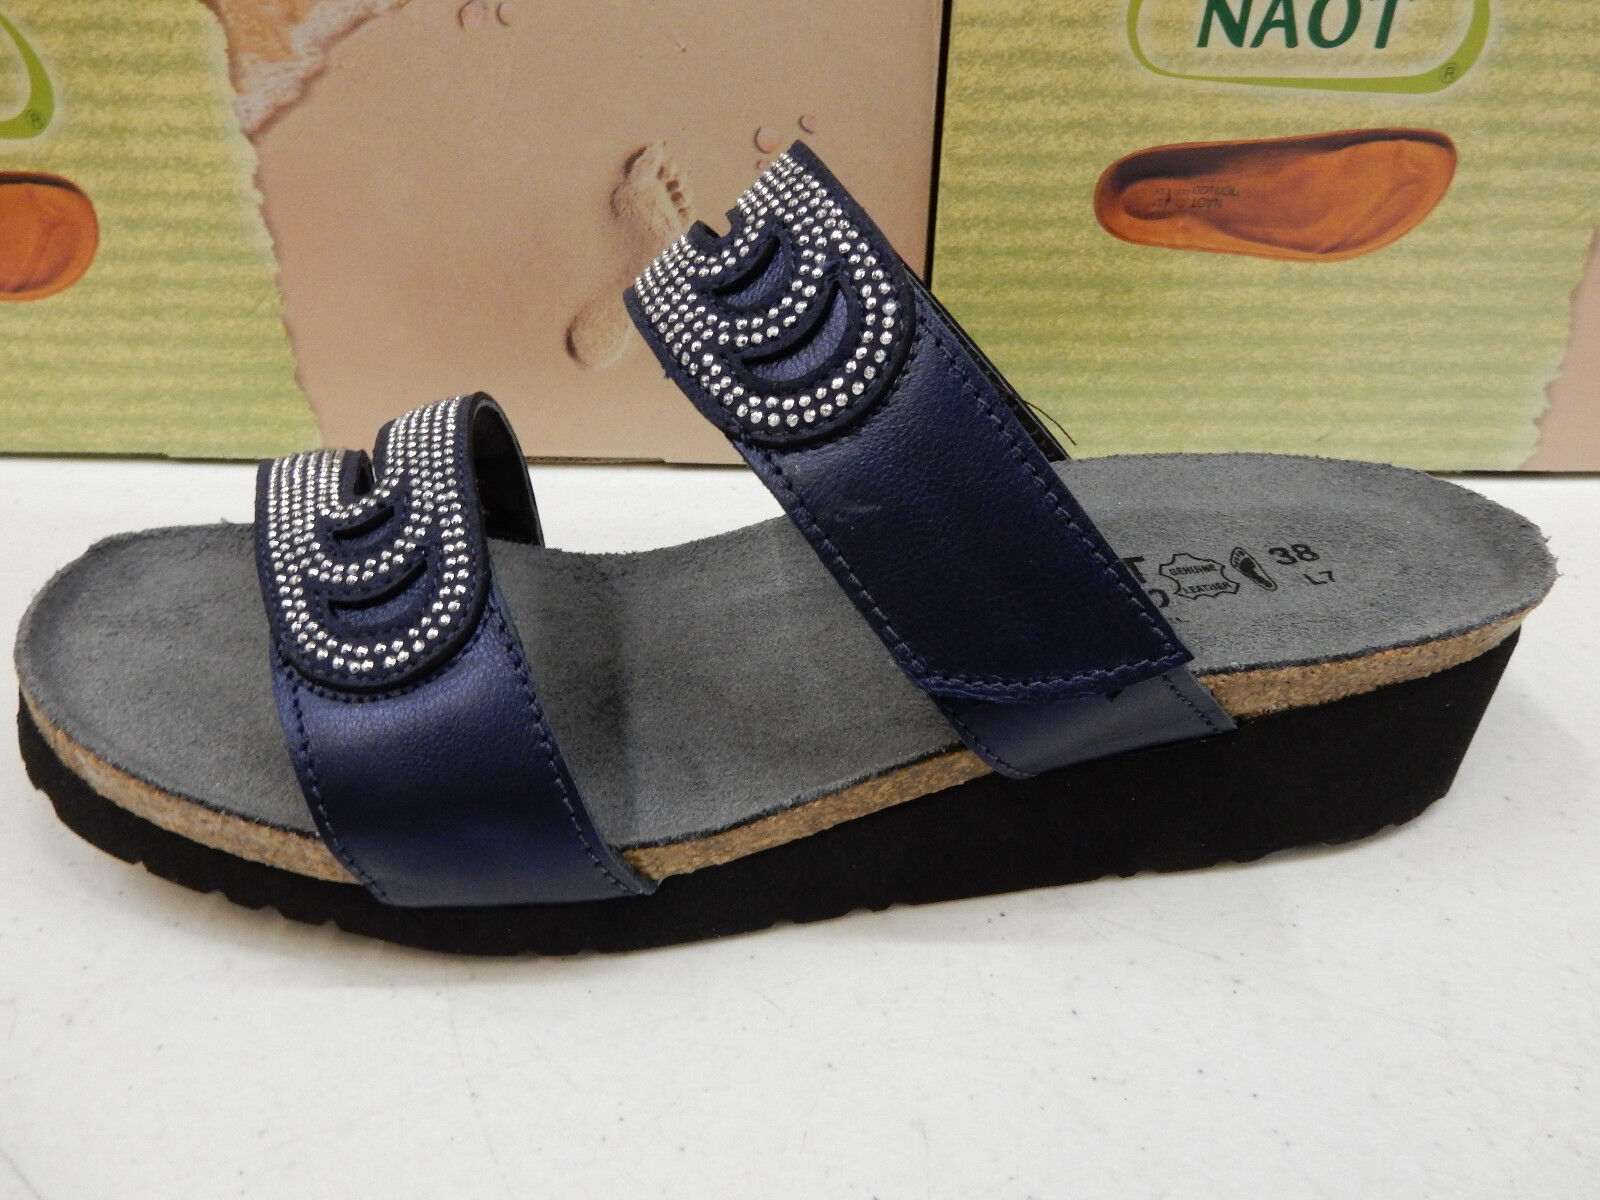 NAOT WOMENS SANDALS AINSLEY POLAR SEA blueE SILVER RIVETS SIZE EU 38